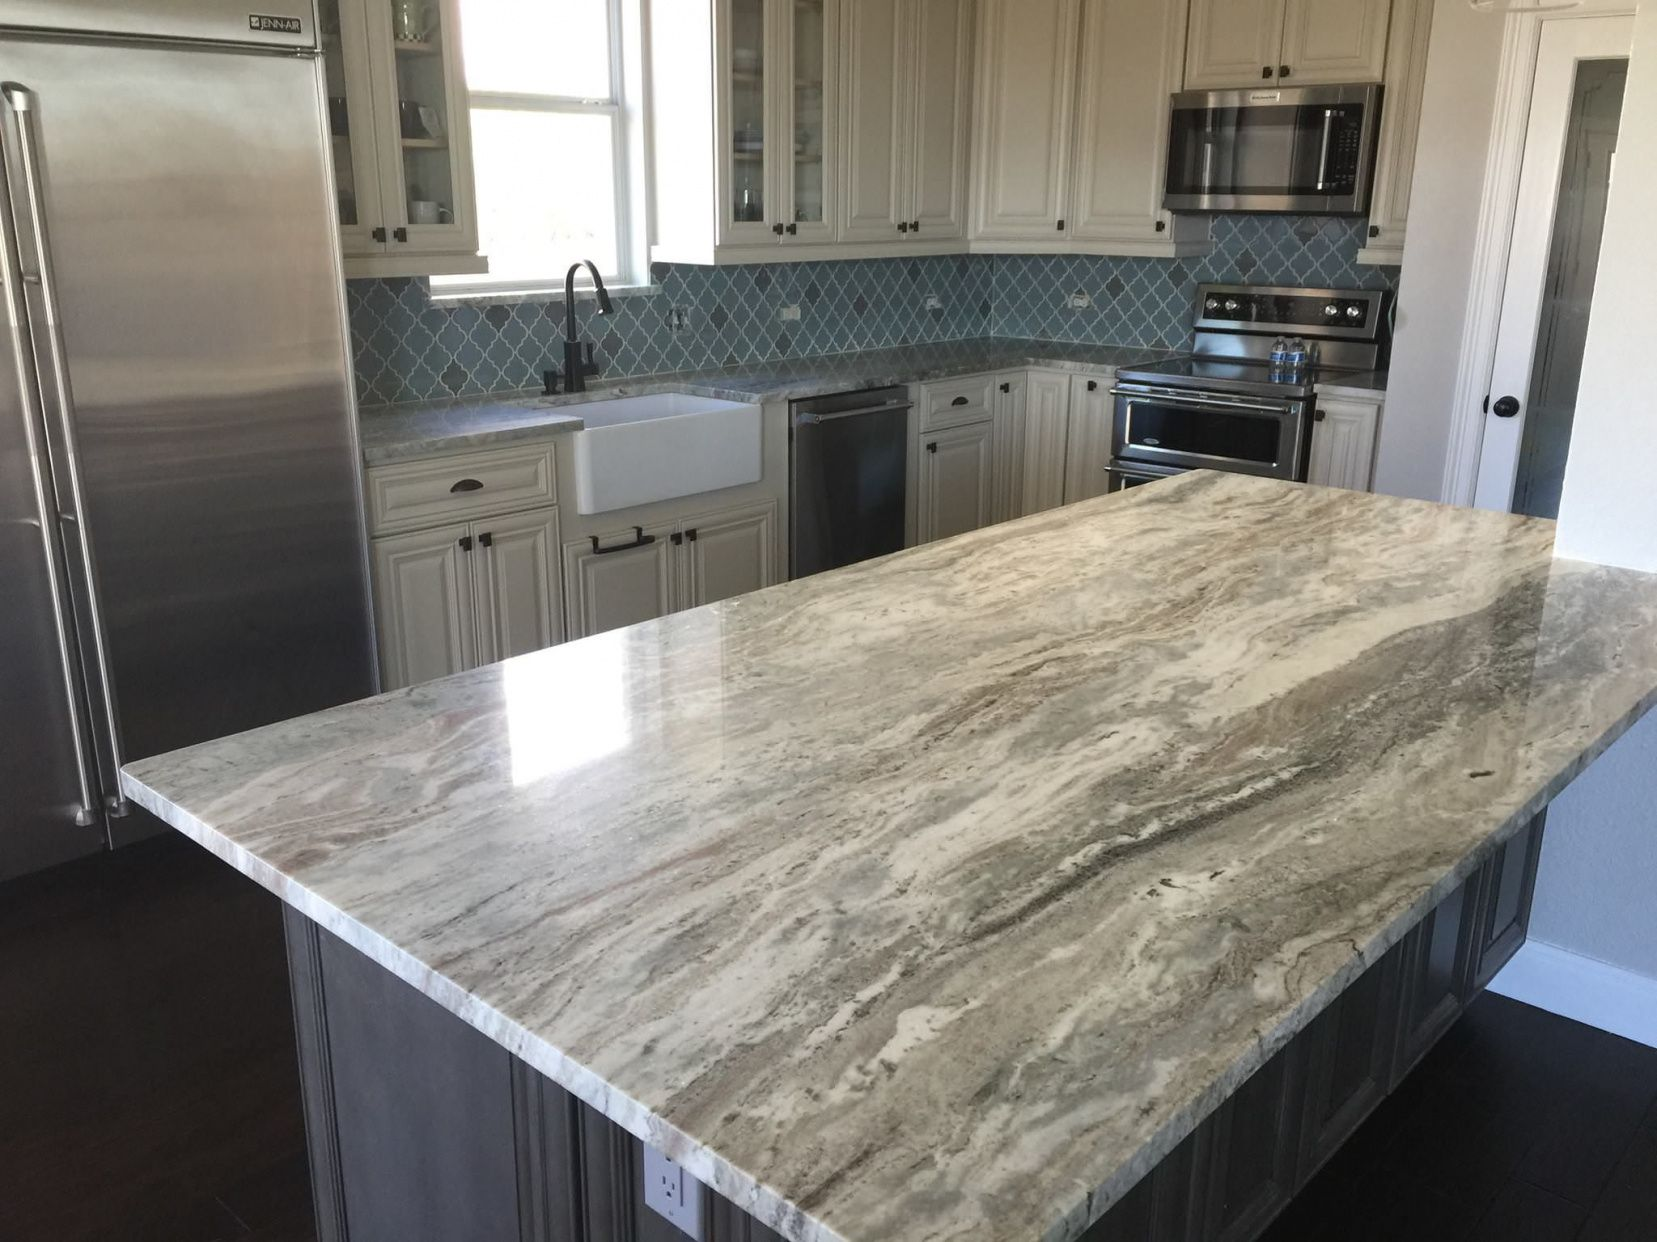 50 Home Depot Granite Countertops Price Apartment Kitchen